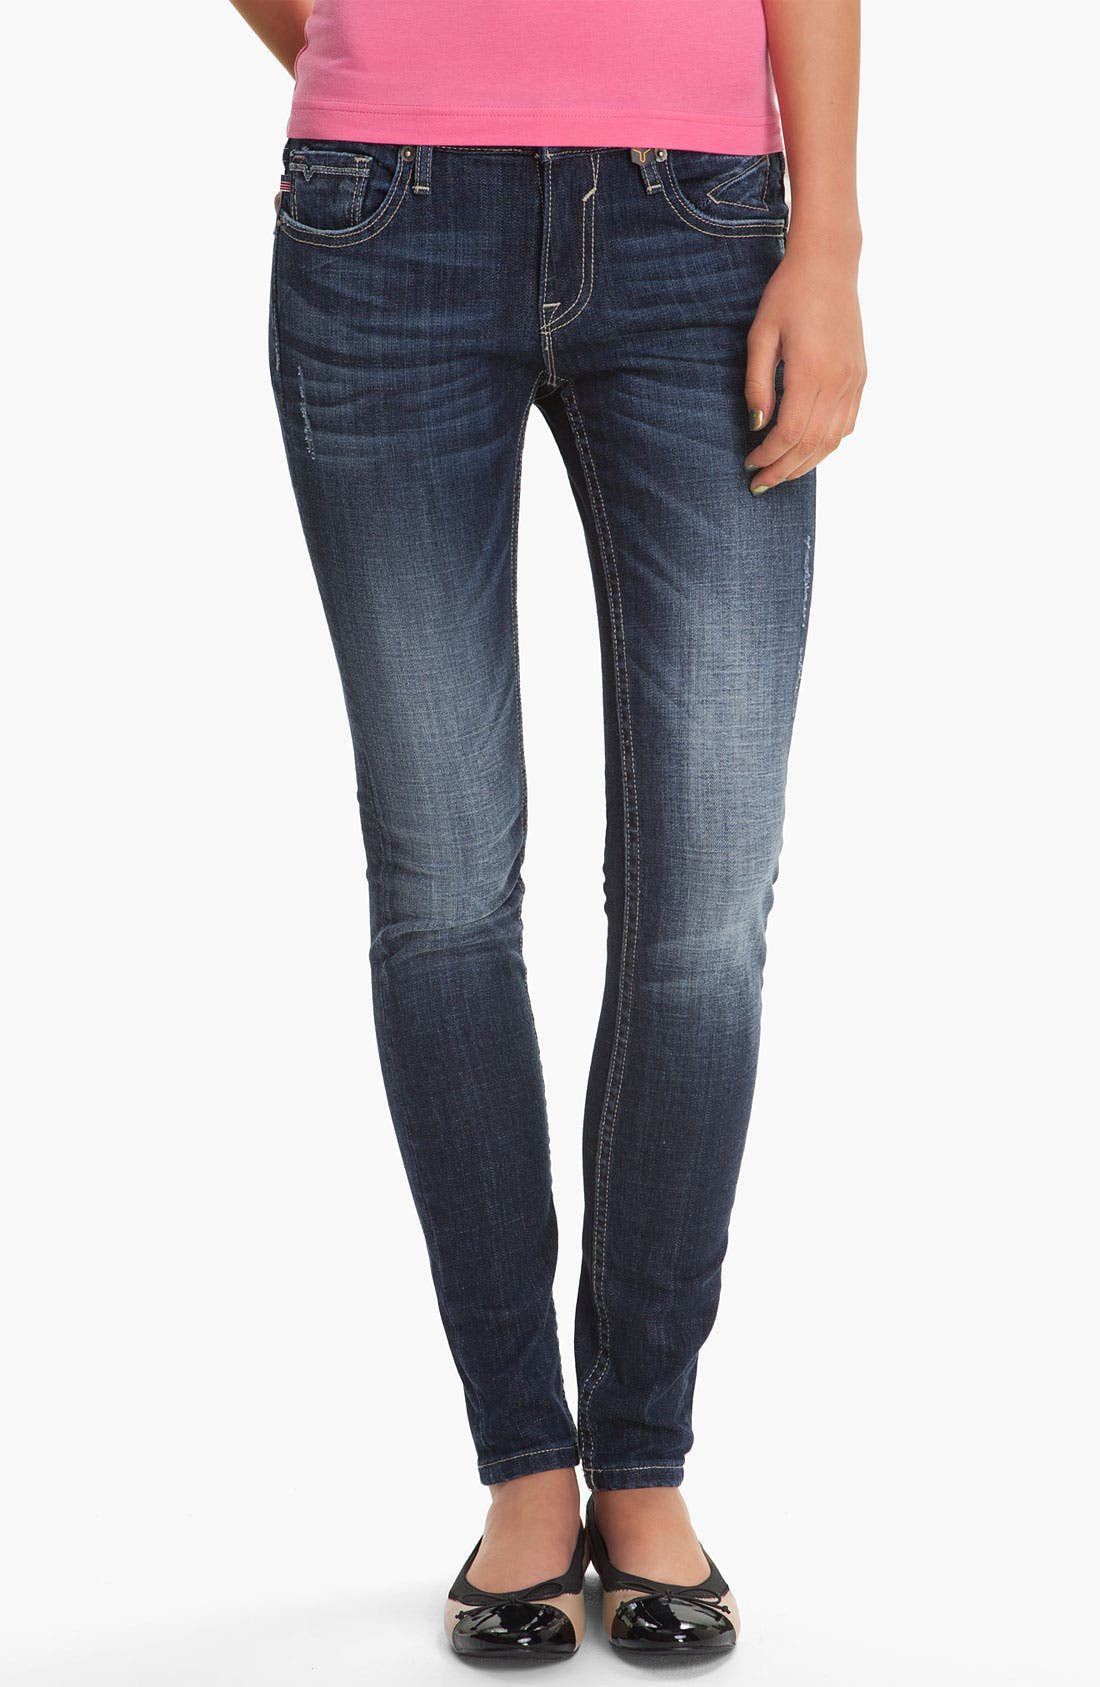 Alternate Image 1 Selected - Vigoss 'Brooklyn' Skinny Stretch Jeans (Juniors)